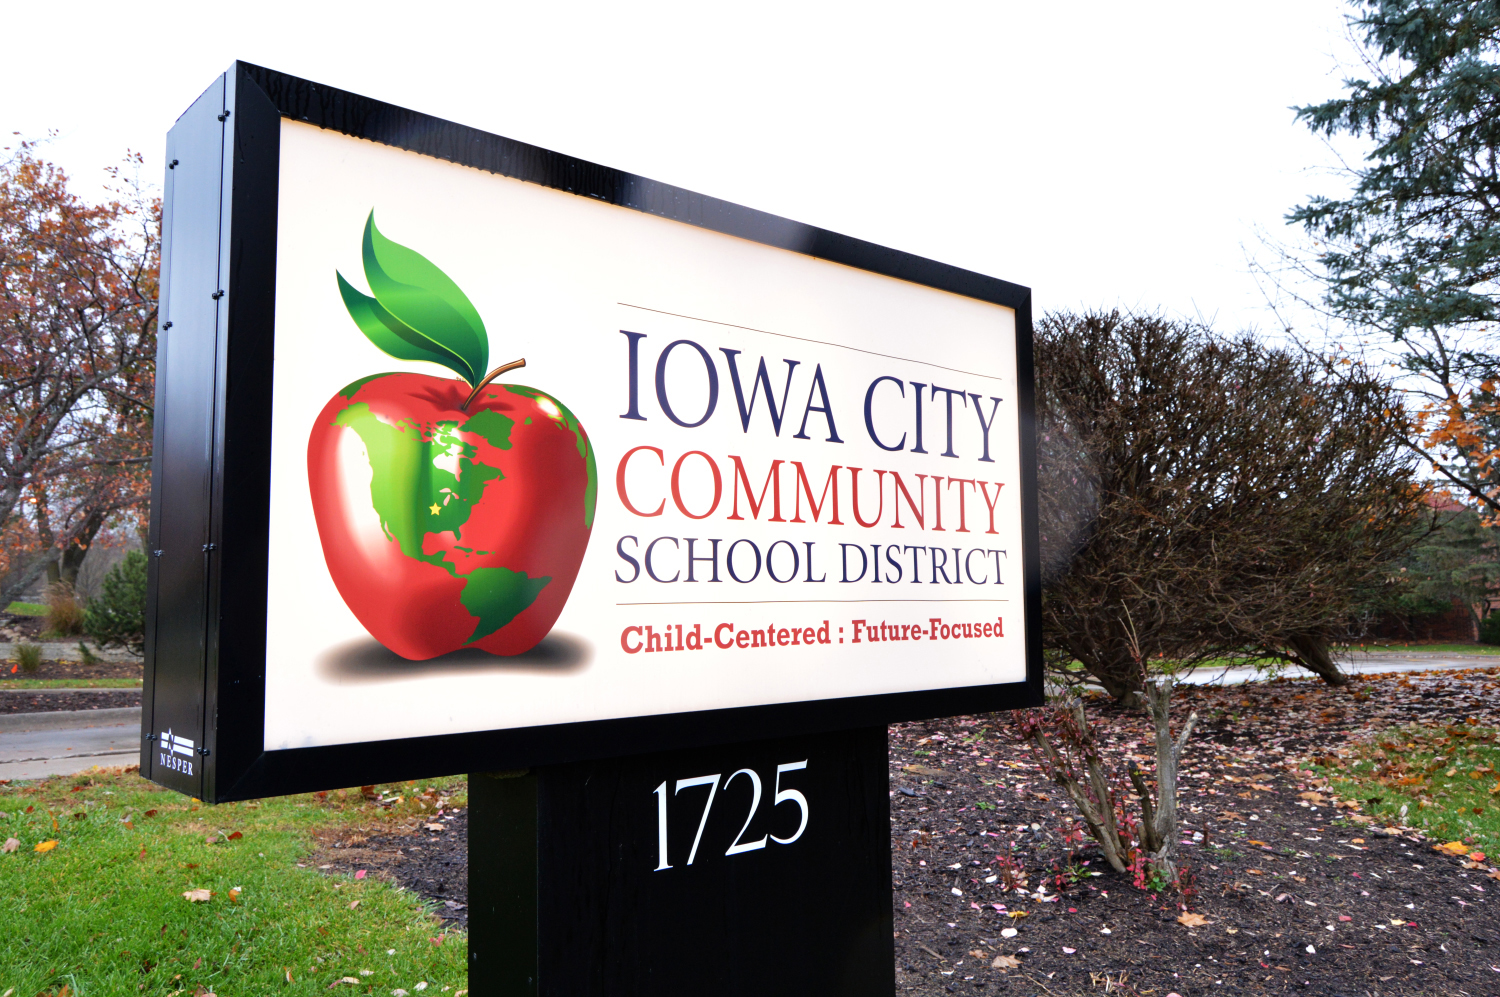 The Iowa City Community School District sign is seen on November 5th, 2018